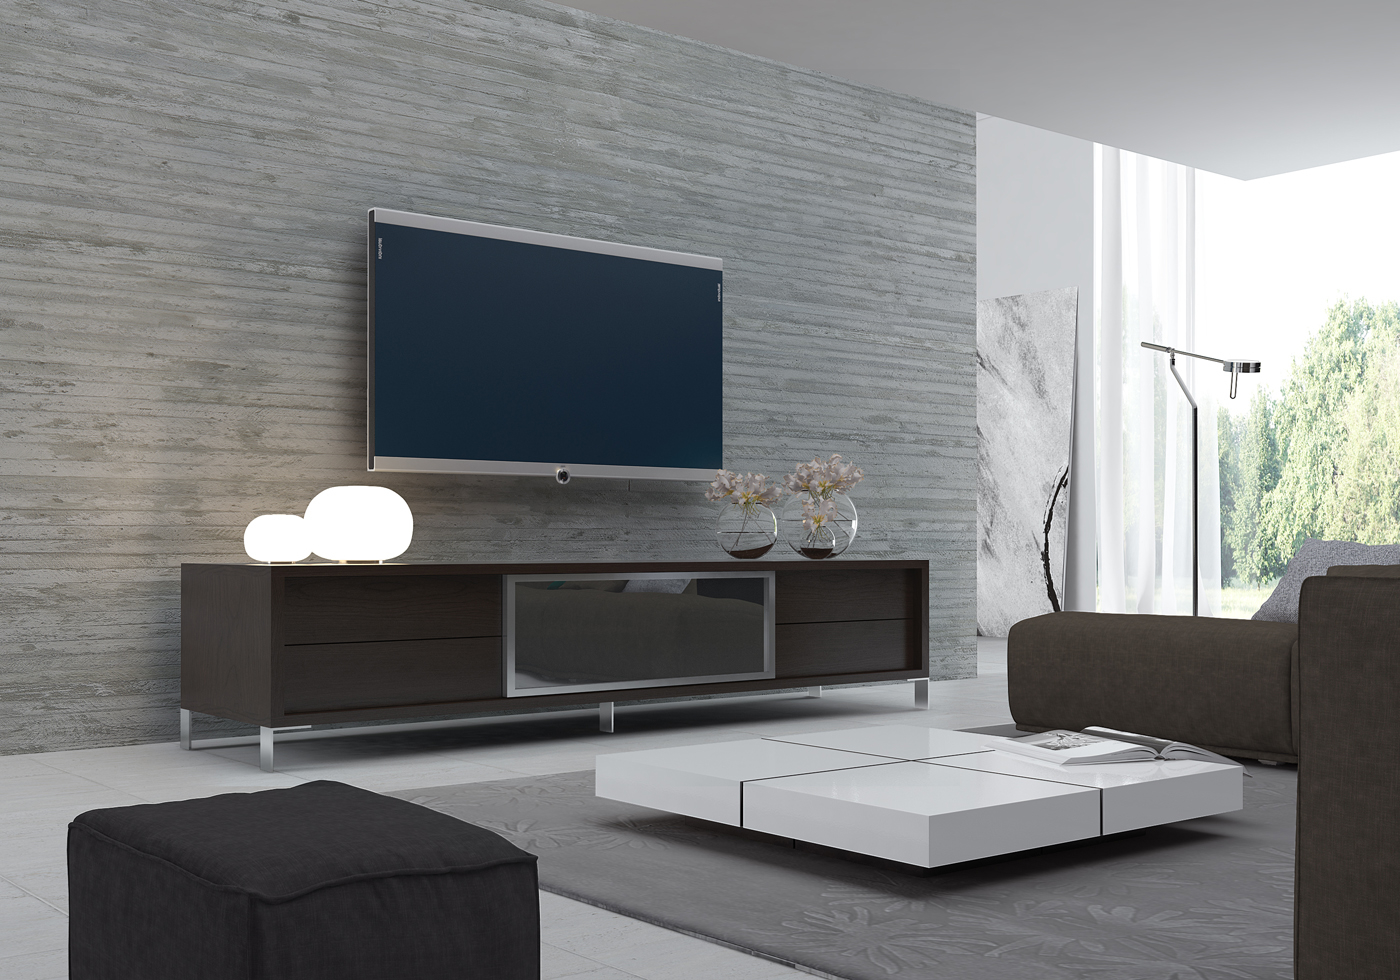 Tv Stand Designs For Living Room : Tv stand and coffee table set roy home design